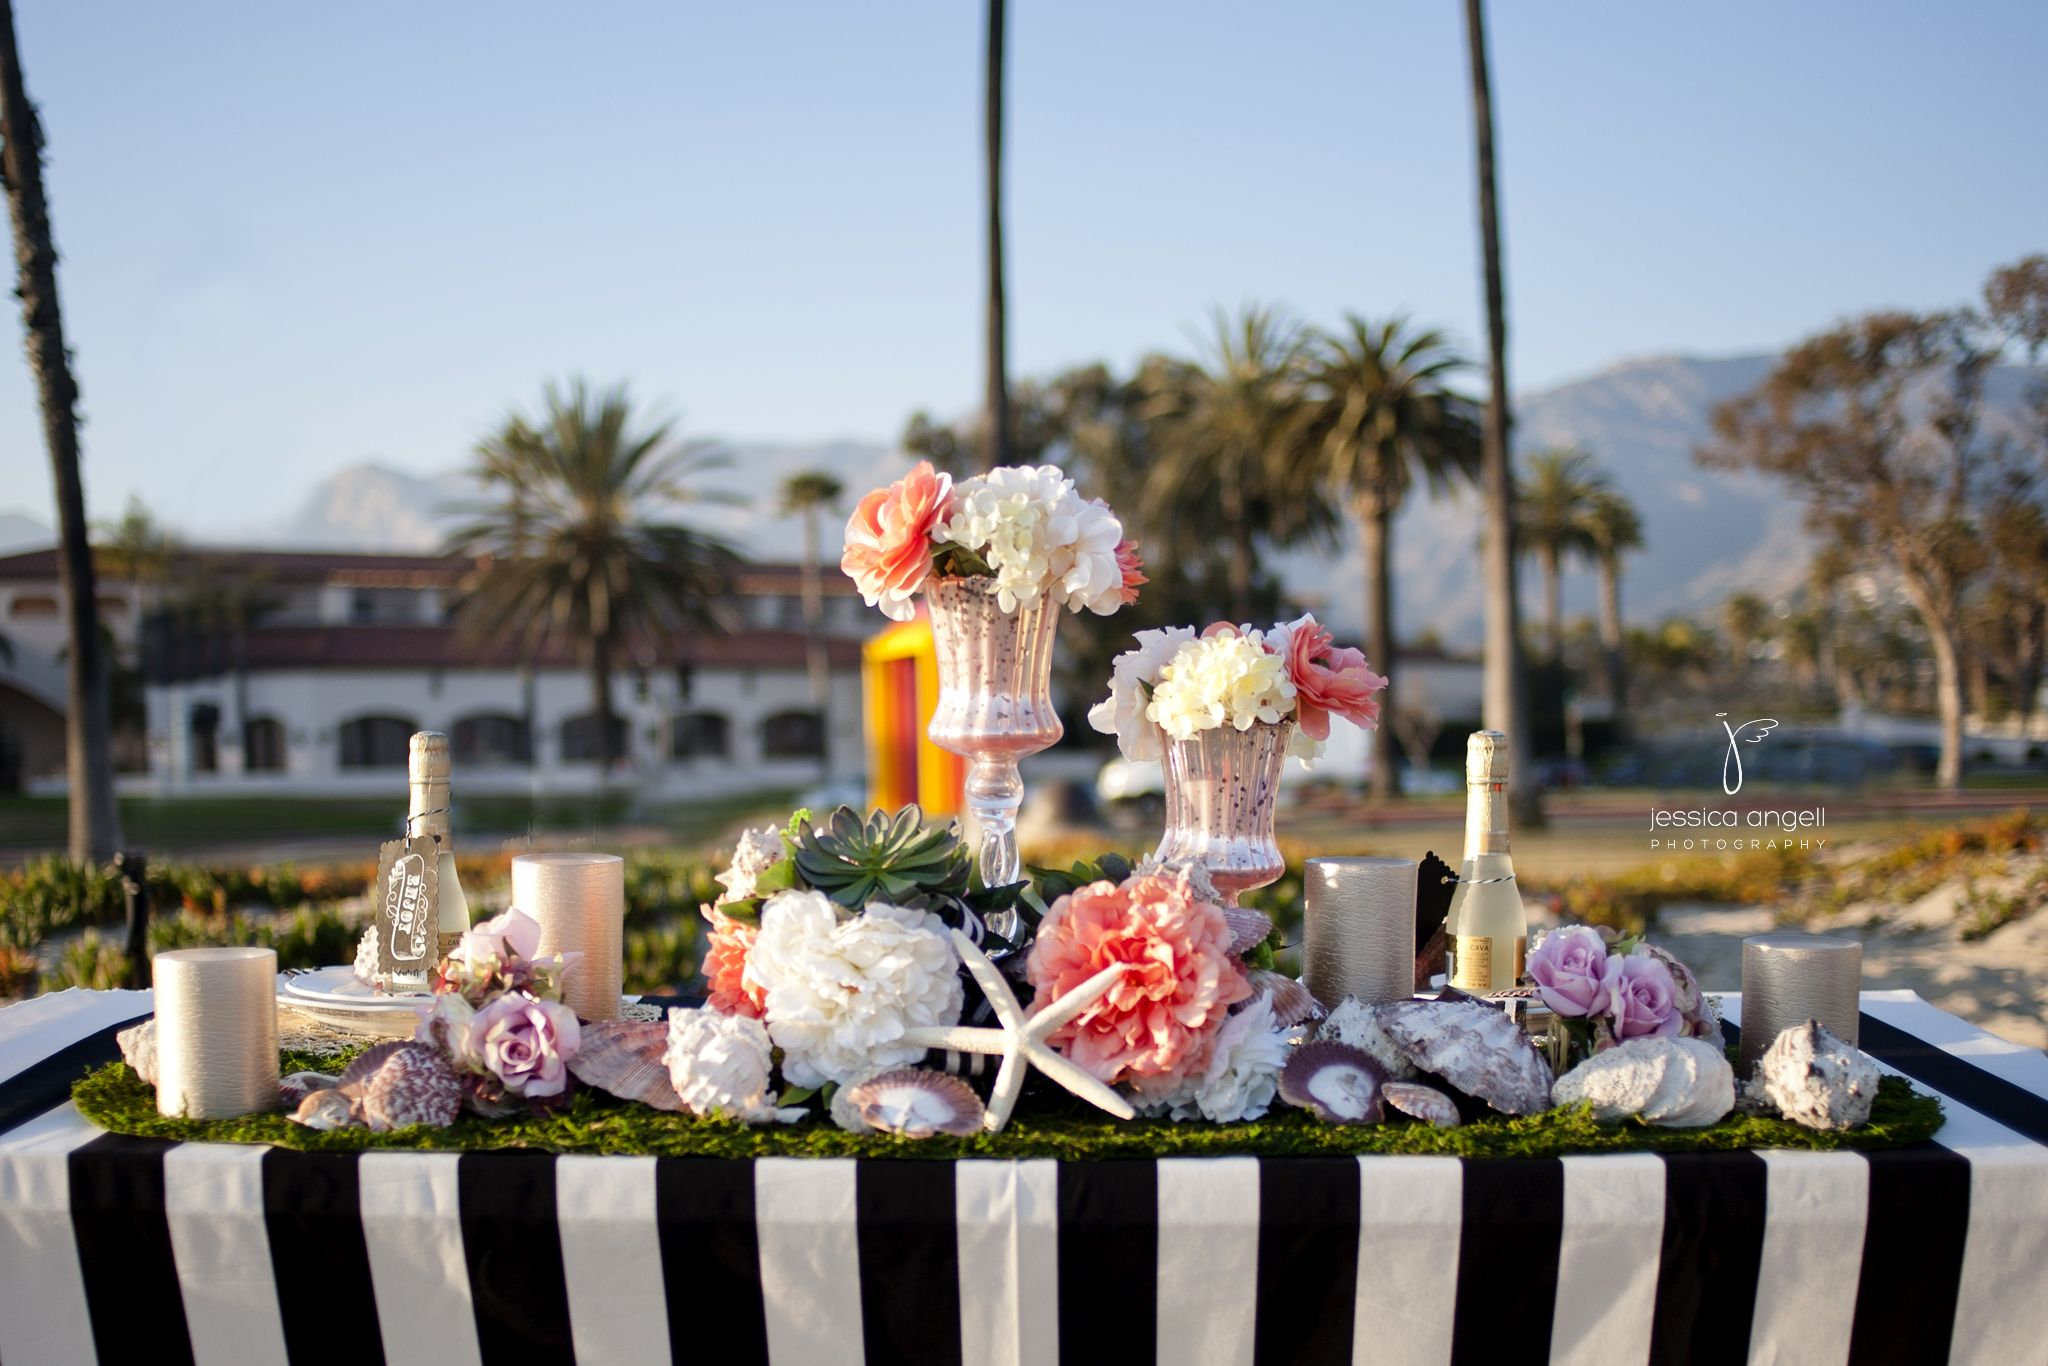 Cabrio Pavillon Santa Barbara Beach Wedding Photography At Cabrillo Pavilion